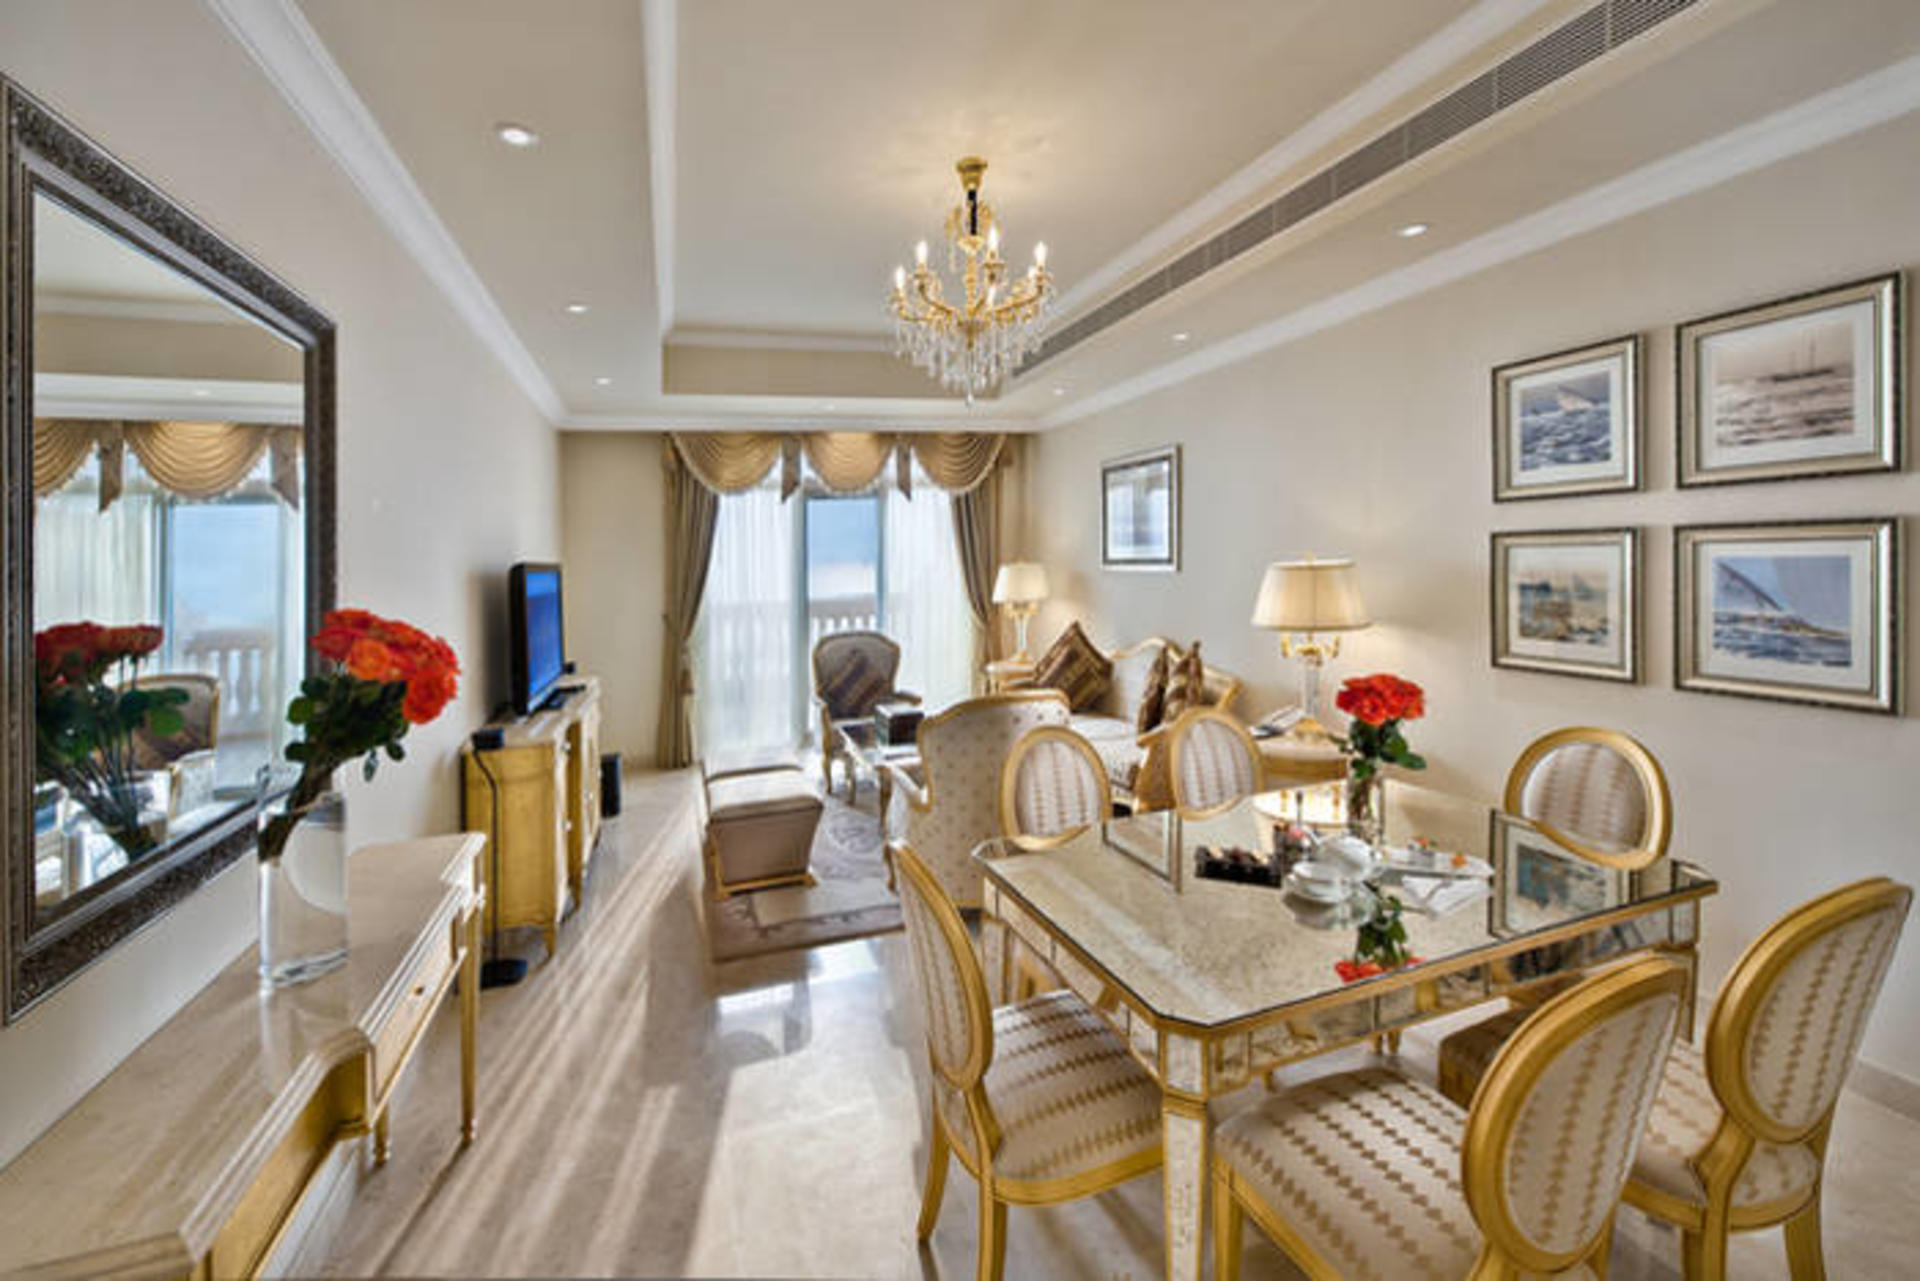 KempinskiPalmJumeirah_Superior-3-Bedroom-Suite